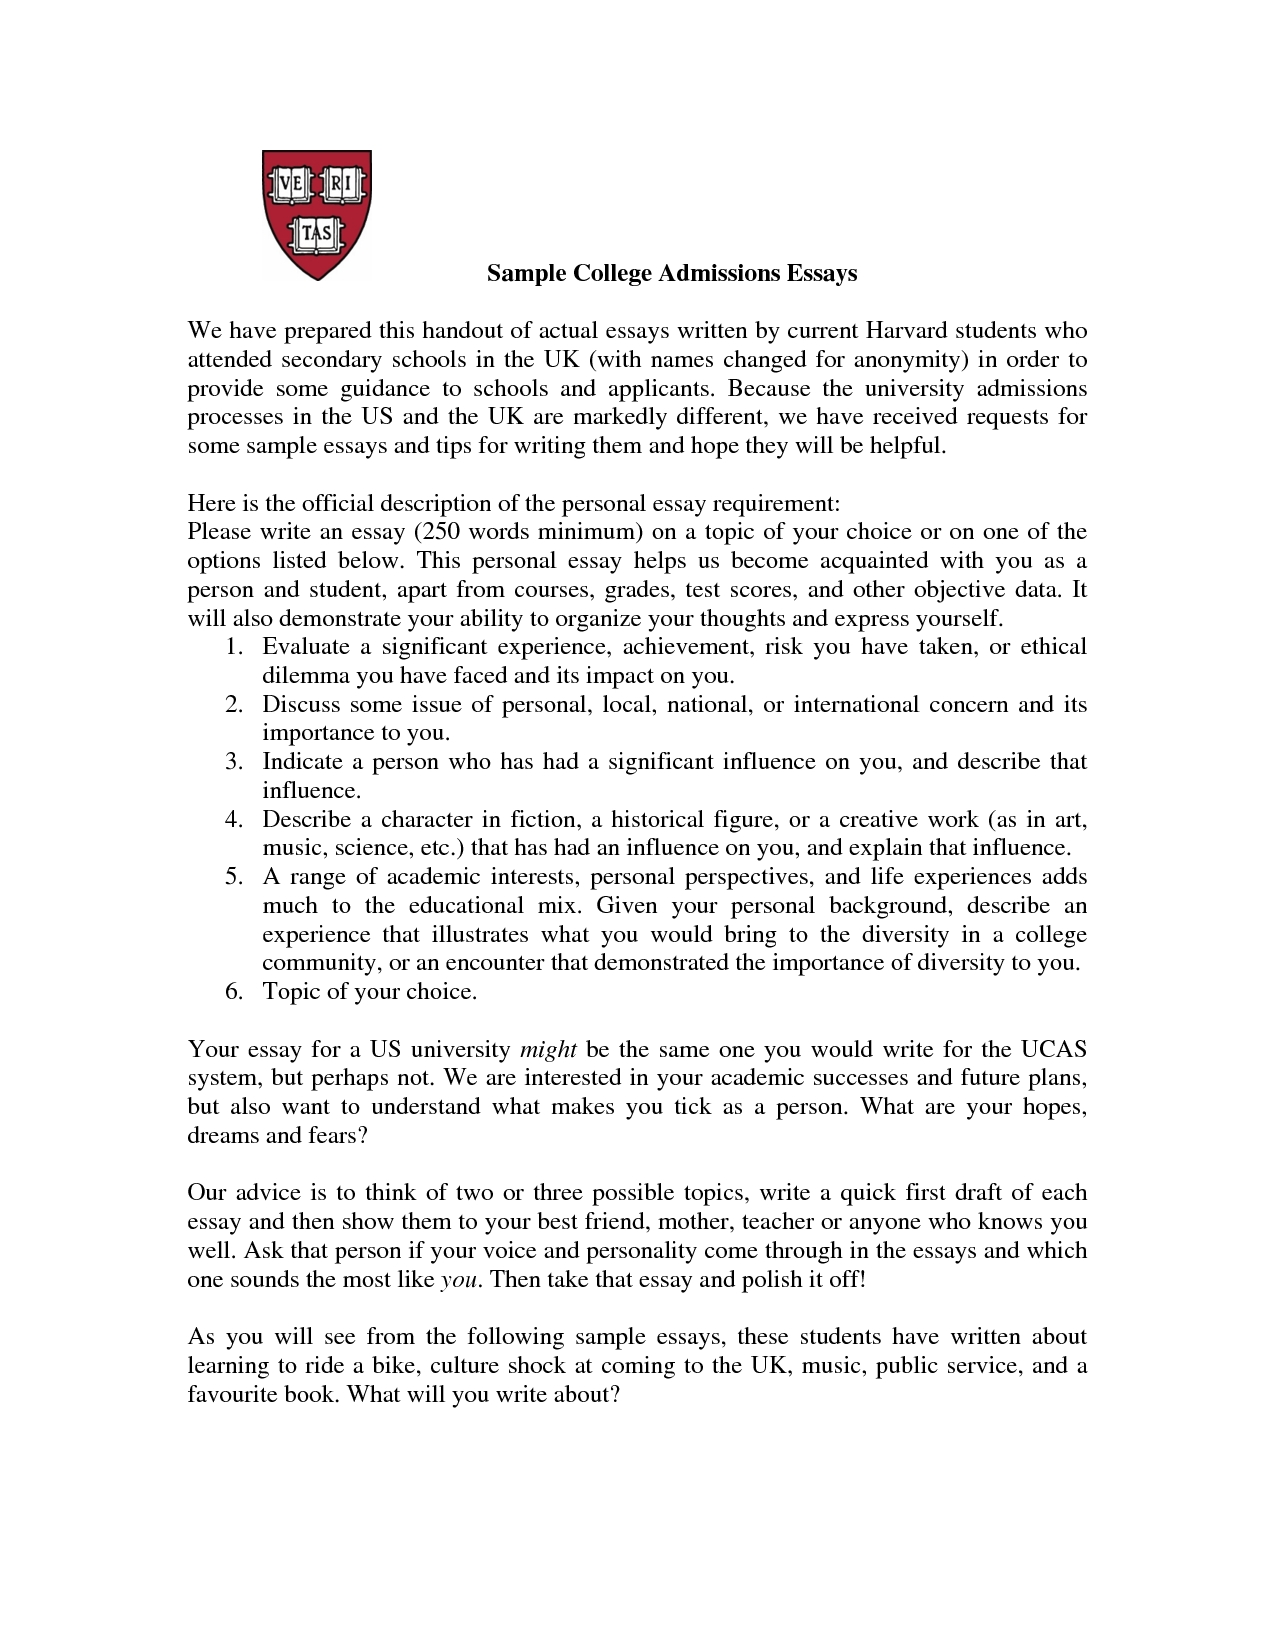 012 Essay Example College Essays For High School Application Dnndmyfreeipme How To Write Examples Of Admissions Format Acur Lunamedia Co Througho Admission Questions About Frightening Bad Worst Reddit Funny Prompts Full